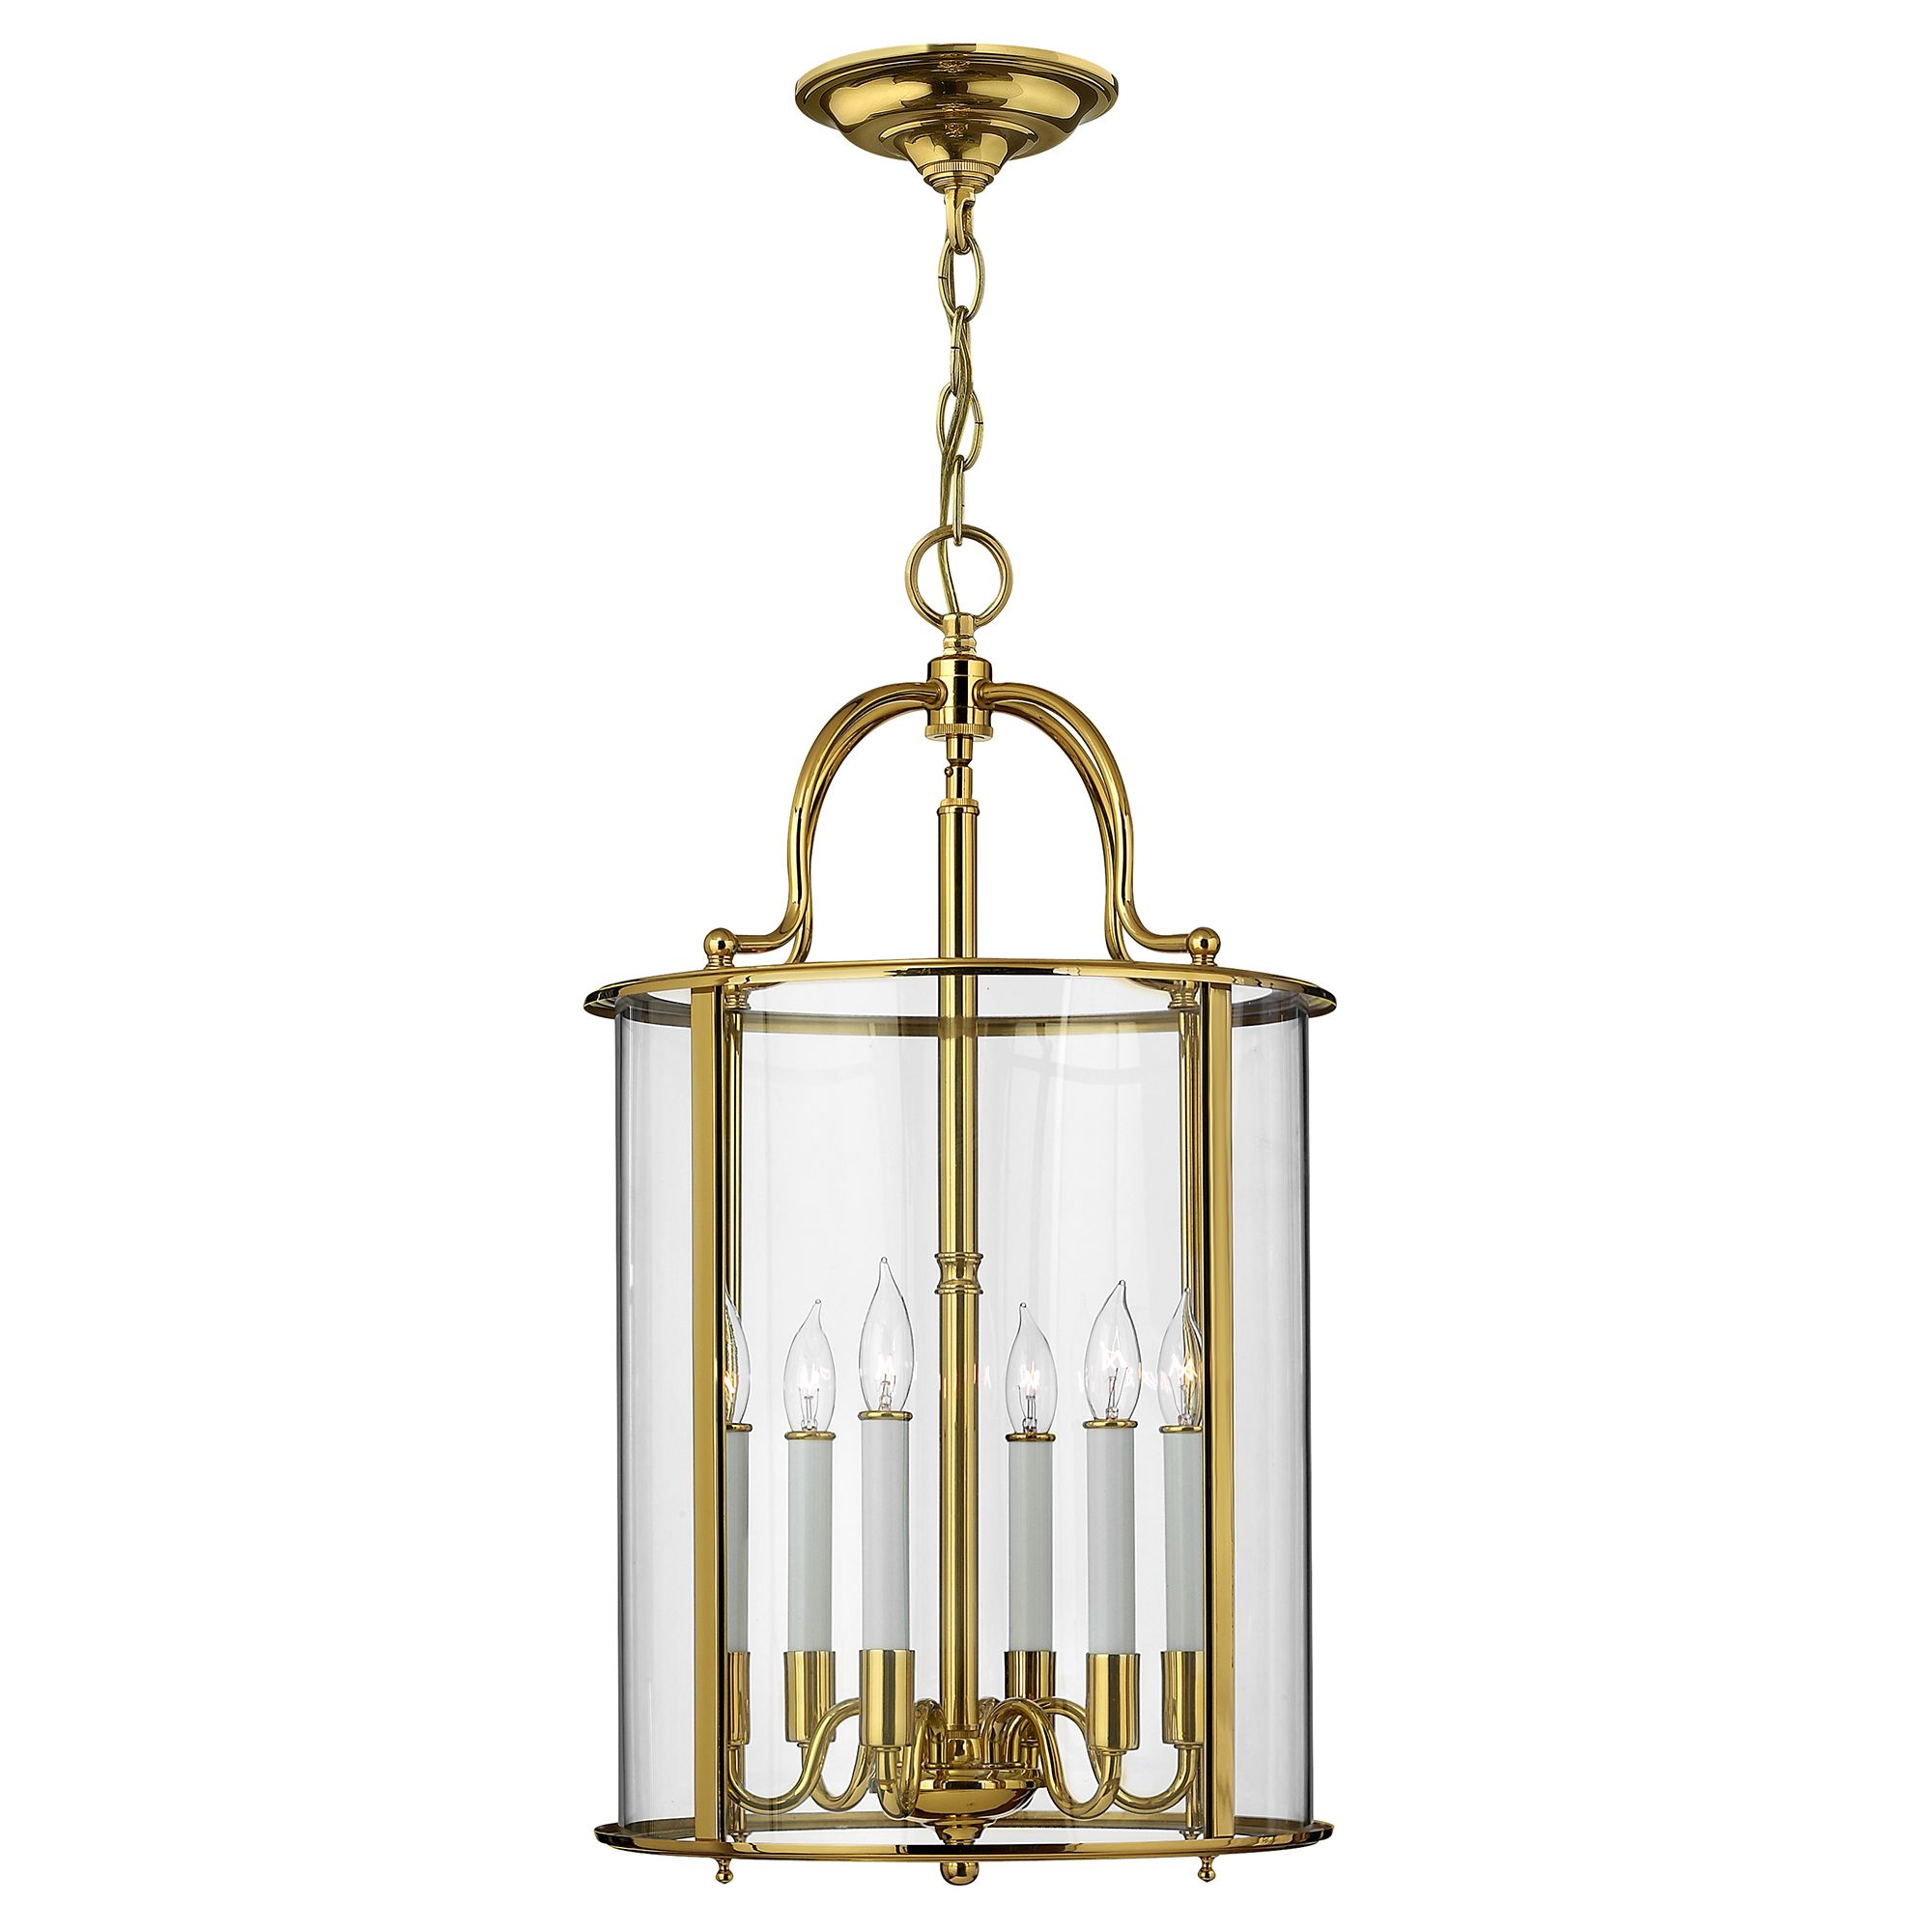 Gentry 6 Light Large Lantern Pendant In A Polished Solid Brass Finish And White Candle Sleeves Hinkley Hk P L Pb